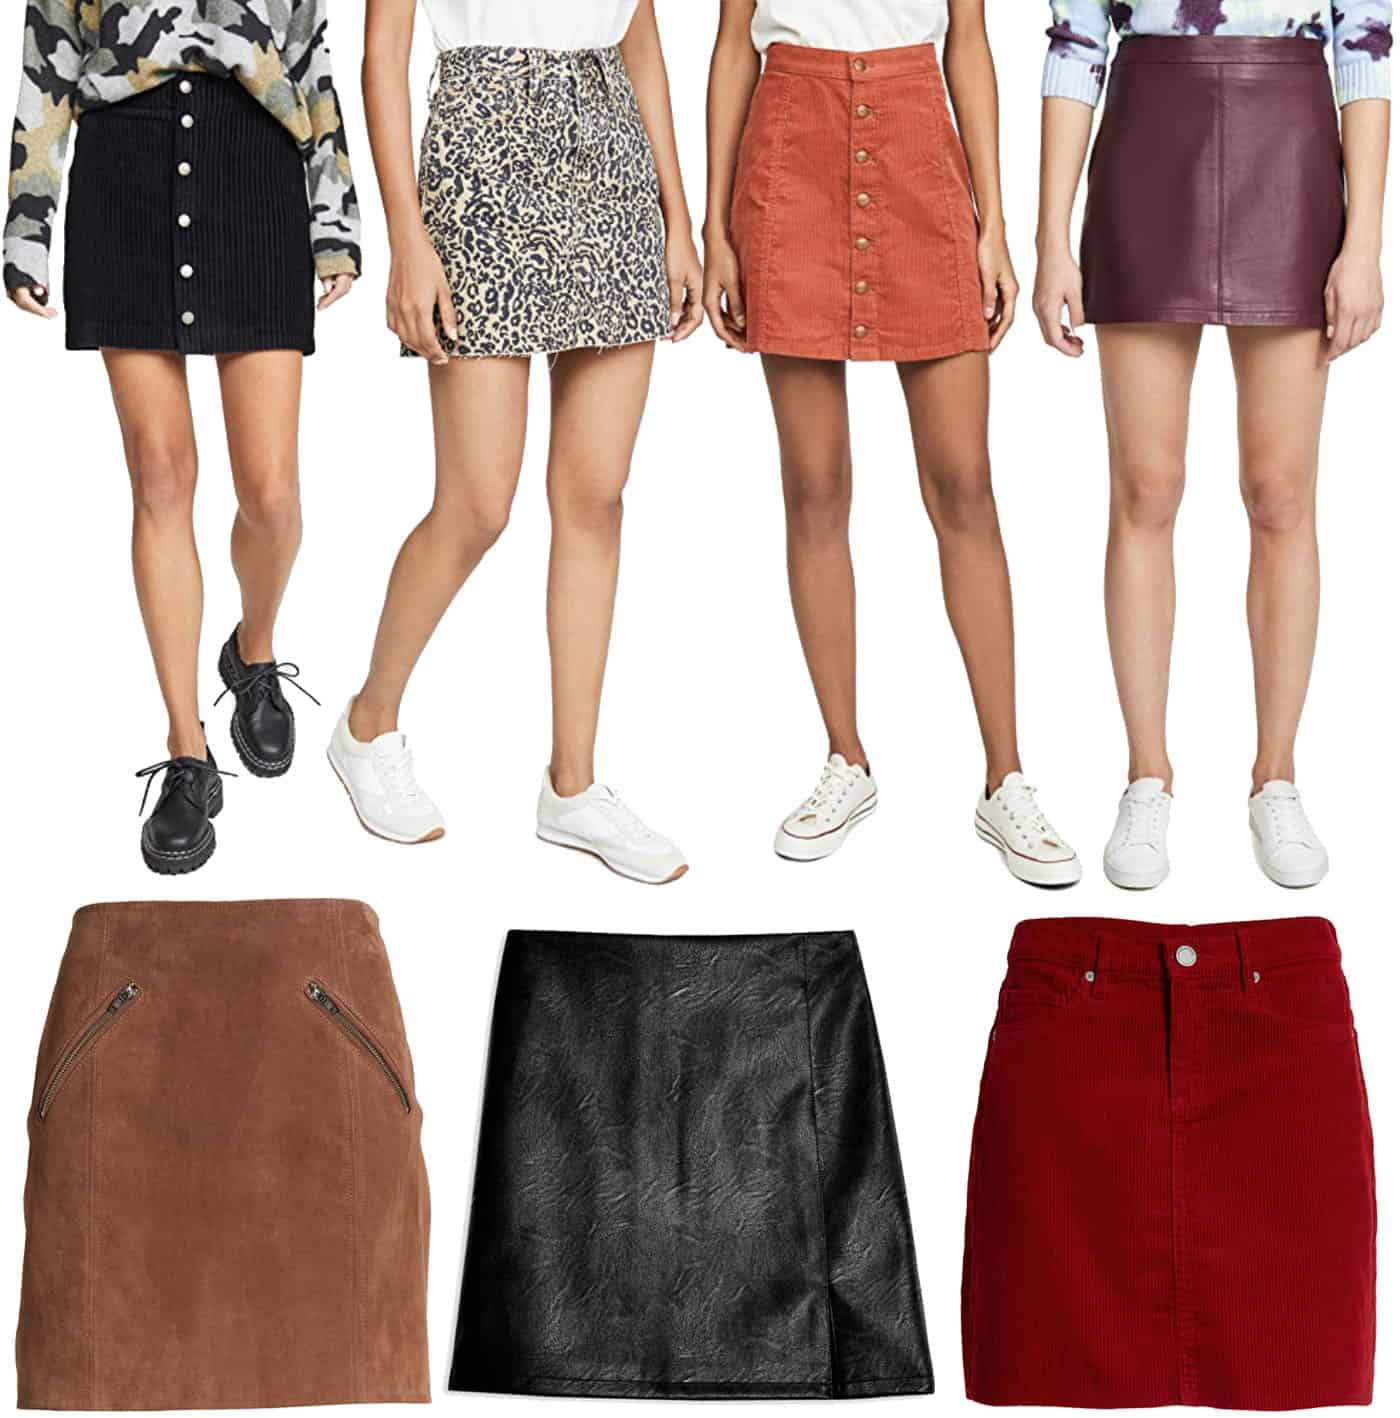 Fall Mini Skirt Trend